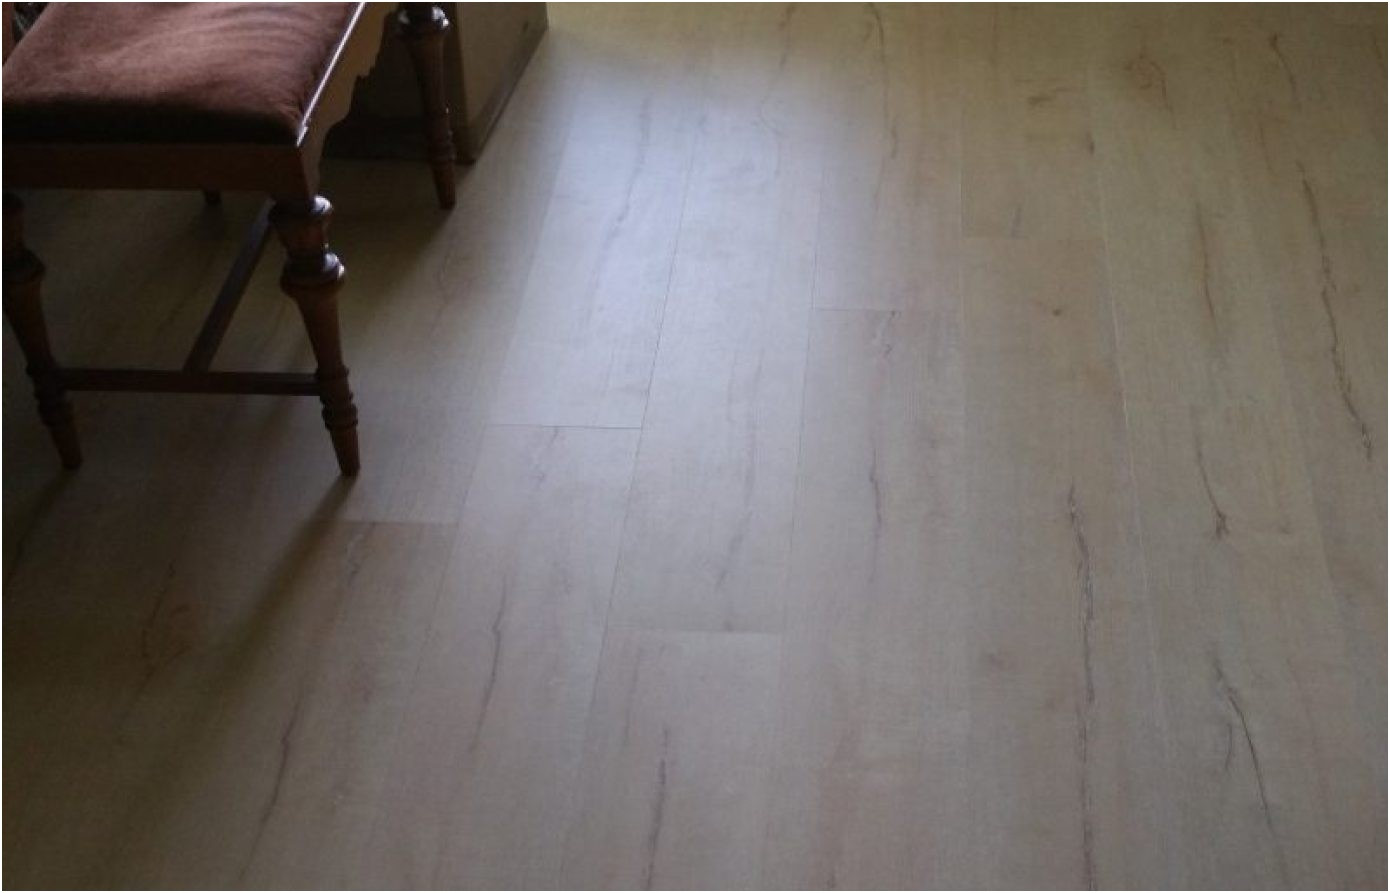 teak hardwood flooring reviews of allure vinyl plank flooring reviews awesome vinyl wood plank inside allure vinyl plank flooring reviews new best way to clean vinyl plank floors luxury floor a